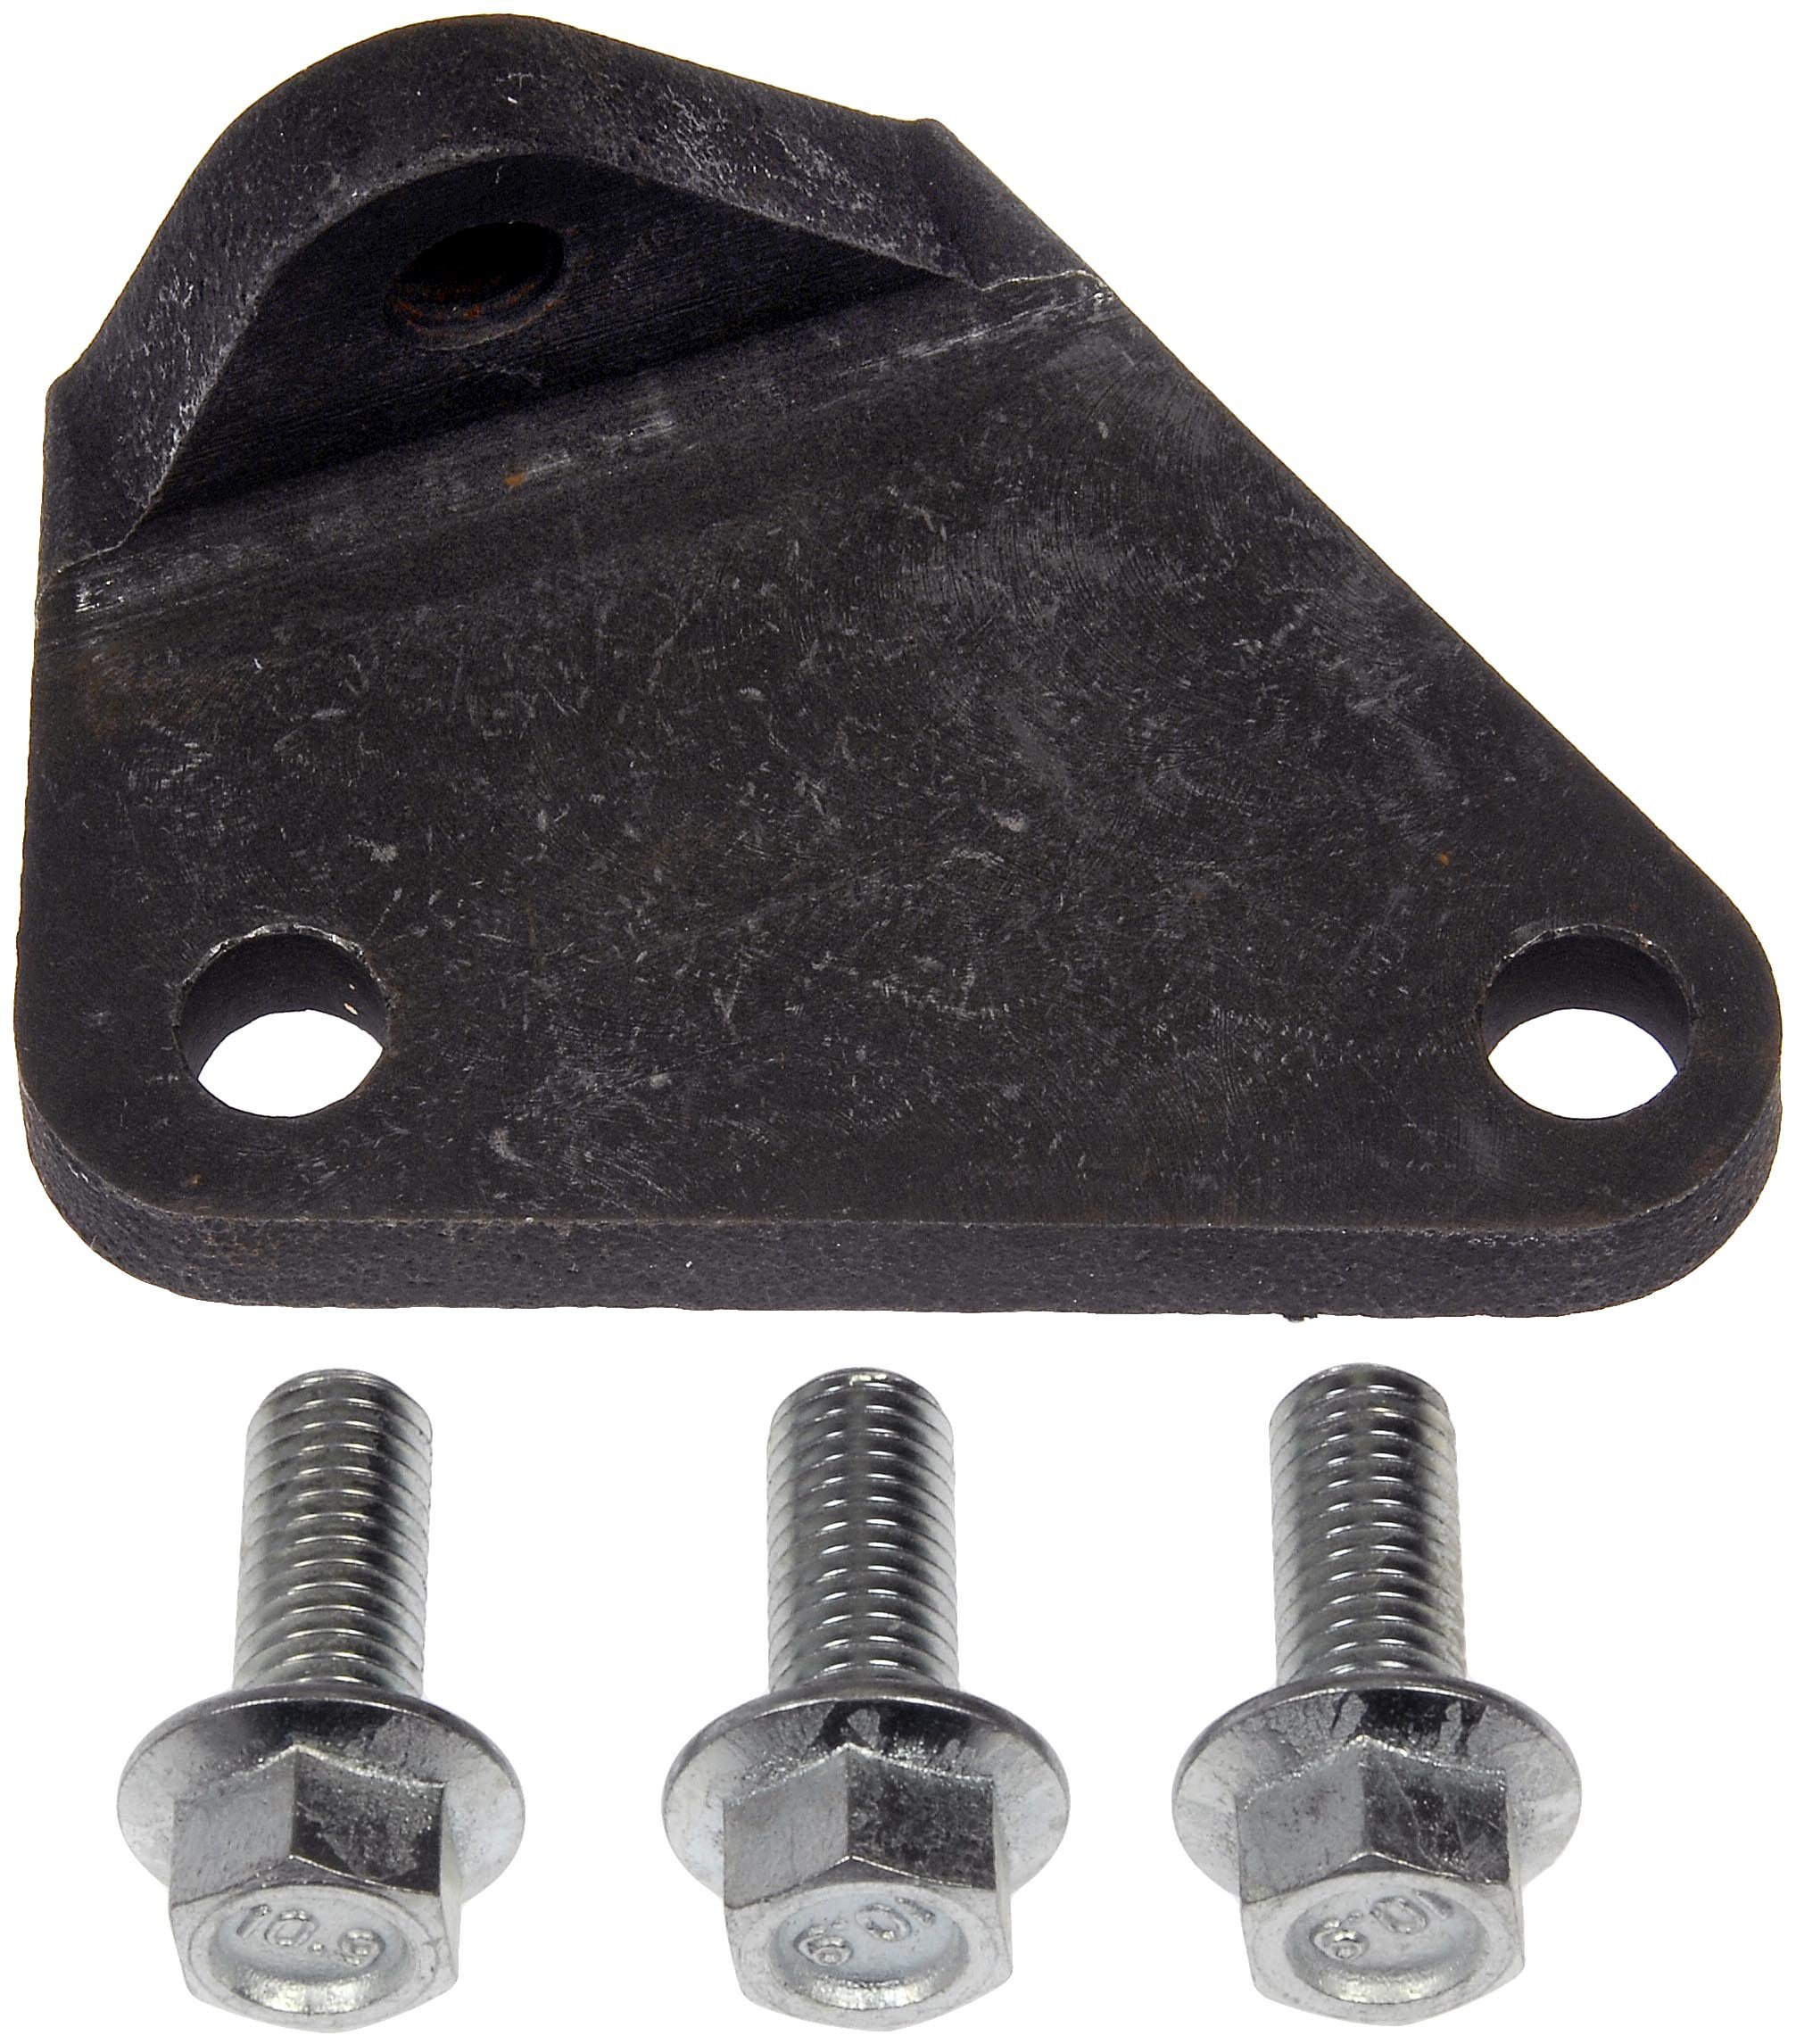 DORMAN 917-107 Exhaust Manifold Clamp